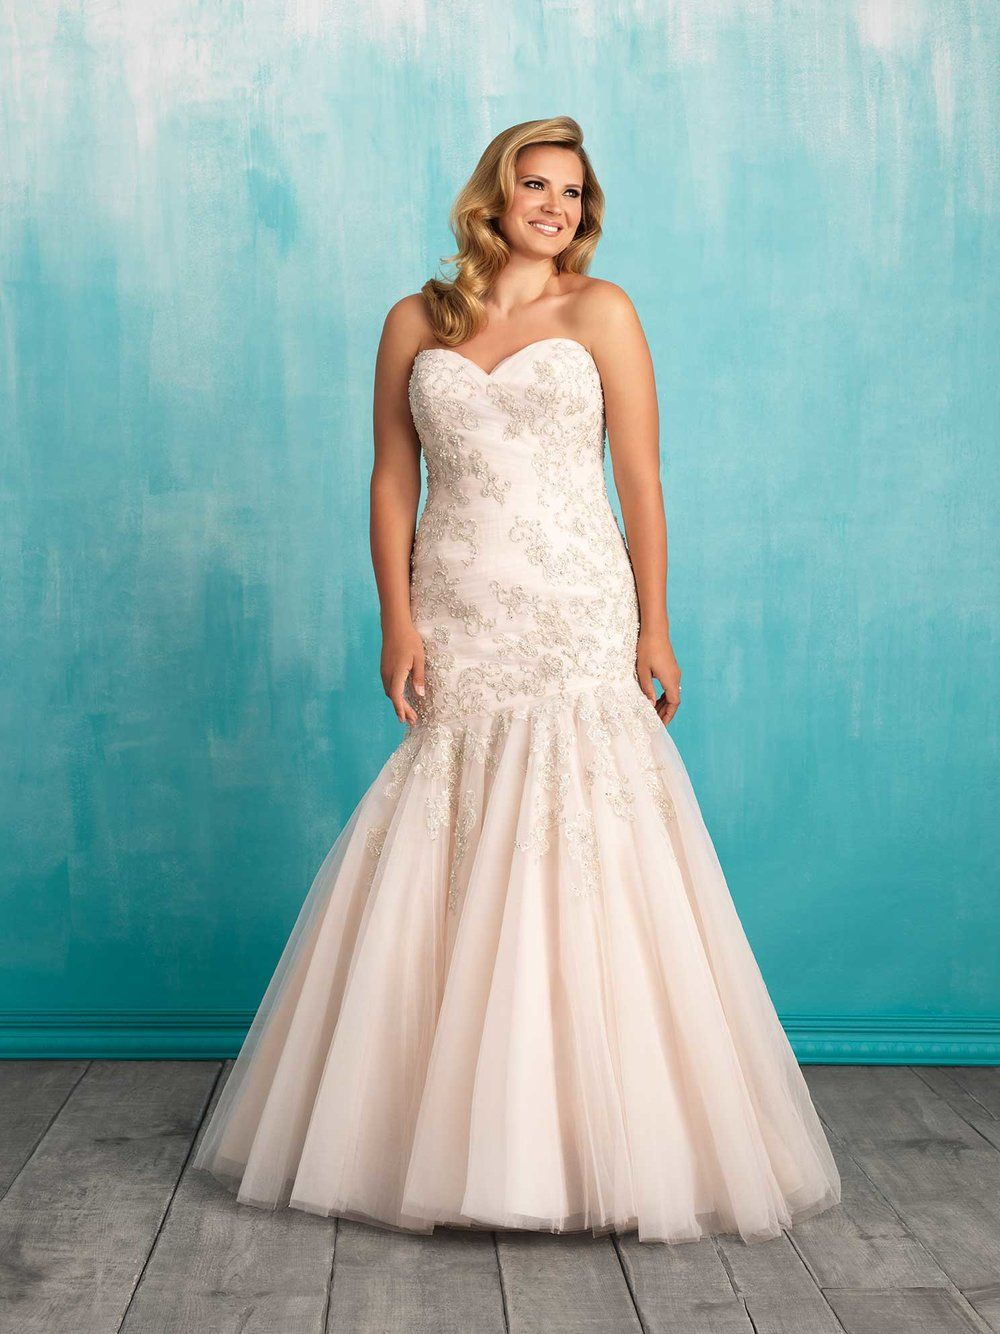 Modern Bonny Plus Size Wedding Dresses Composition - All Wedding ...